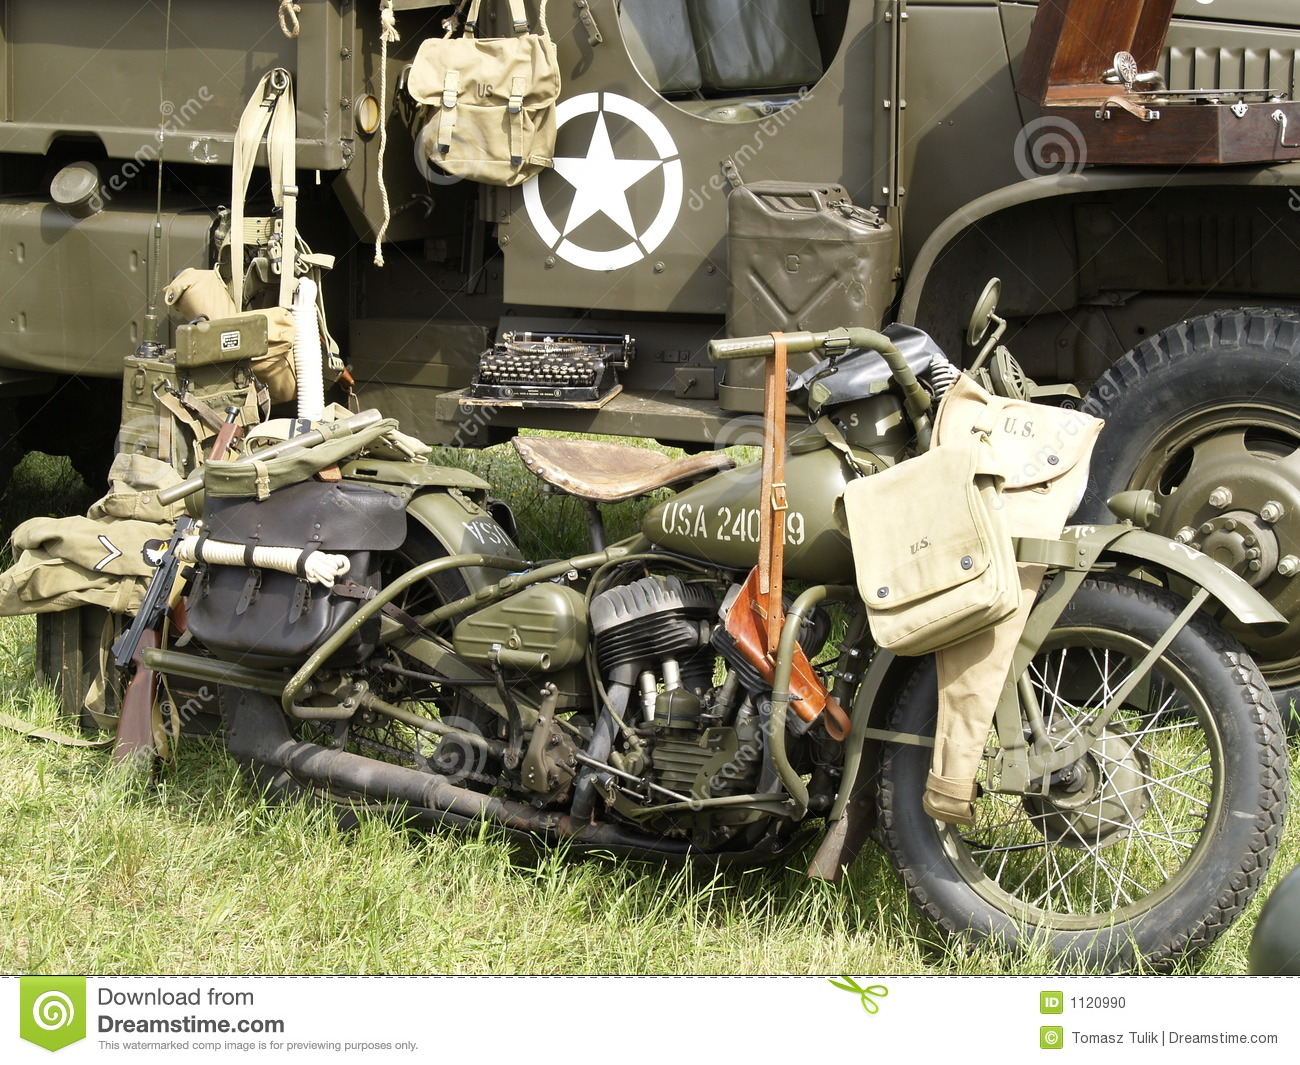 old military motorcycle stock photo image of bullets. Black Bedroom Furniture Sets. Home Design Ideas